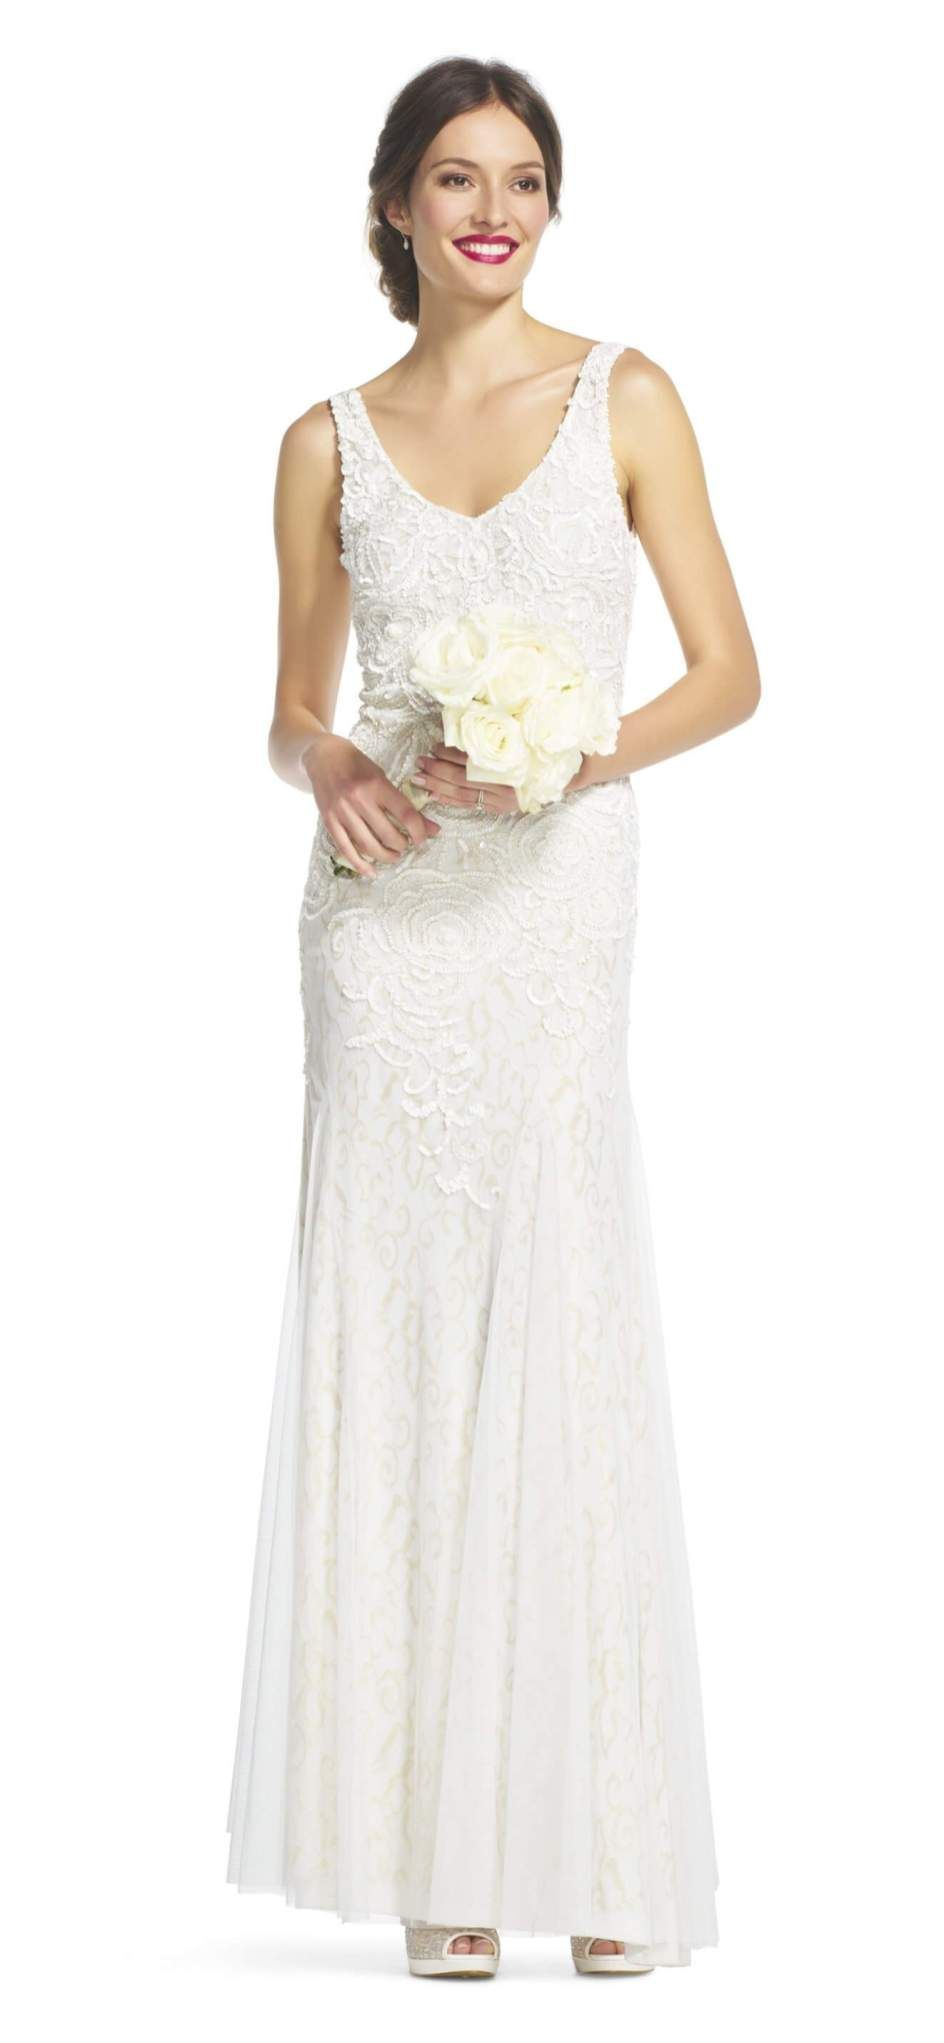 Wedding dresses with gold  The Magic of Wedding Themes  White wedding dresses Wedding dress